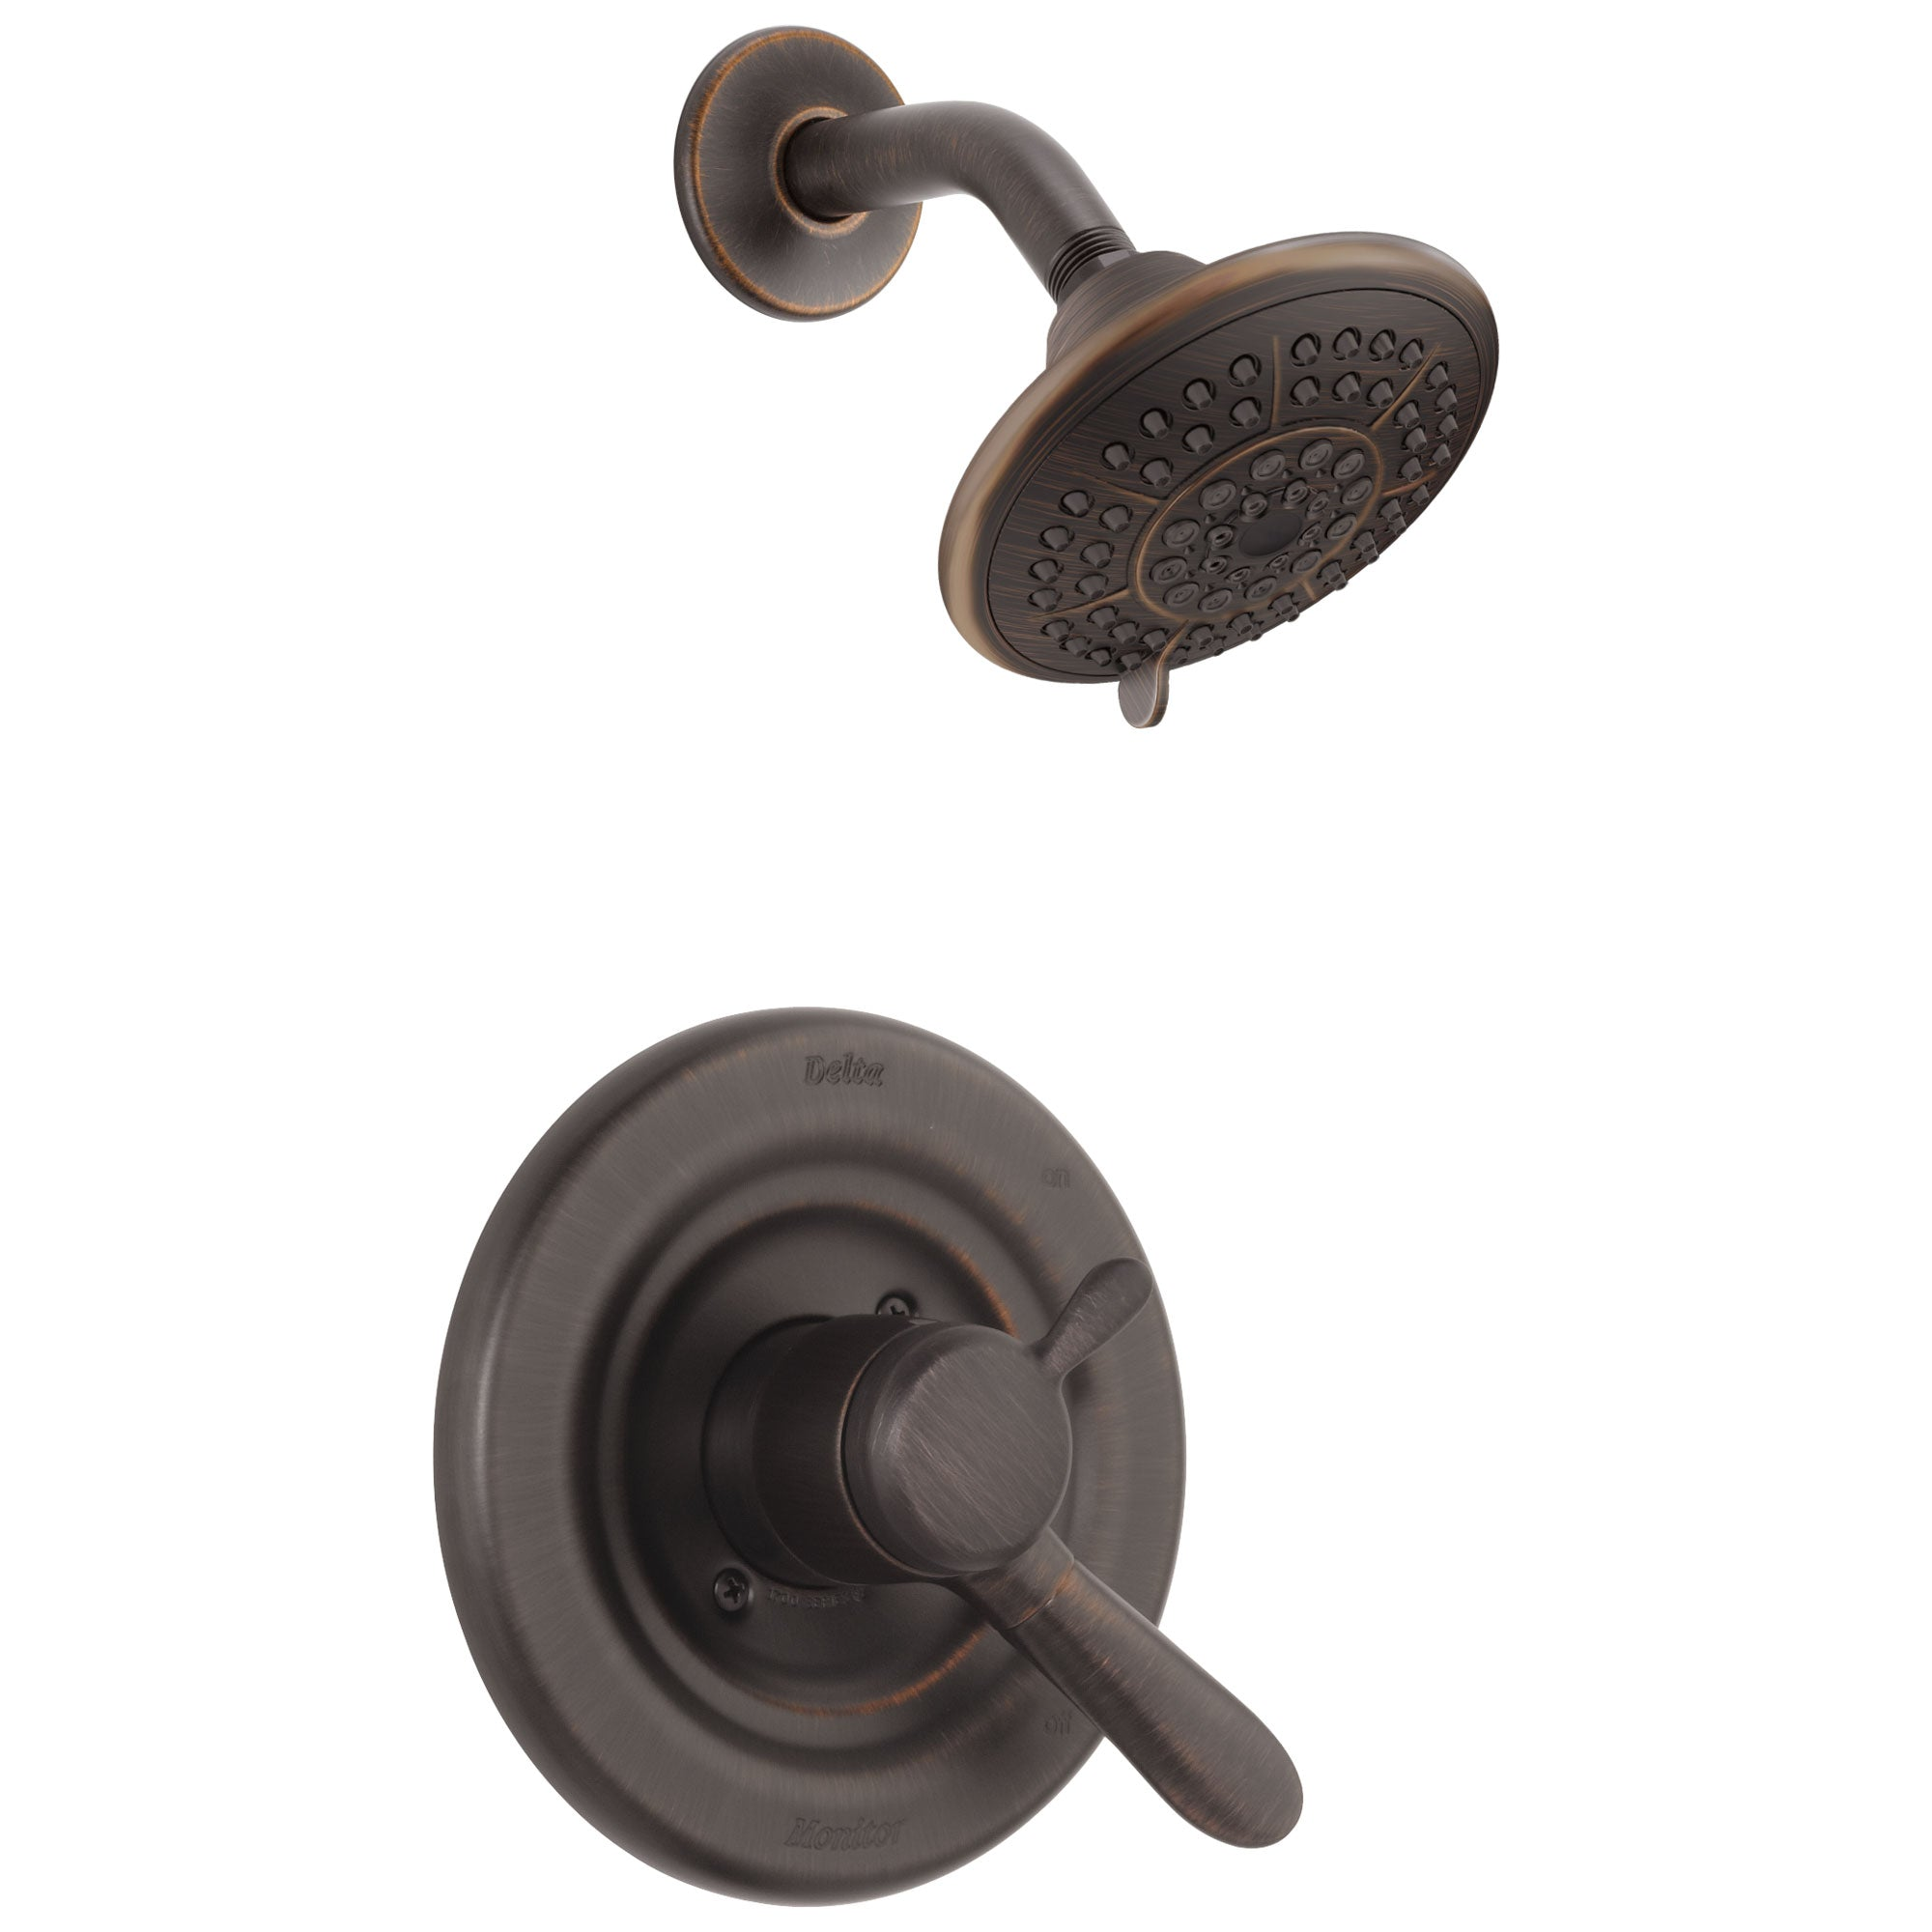 Delta Lahara Venetian Bronze Temp/Volume Control Shower Faucet with Valve D676V